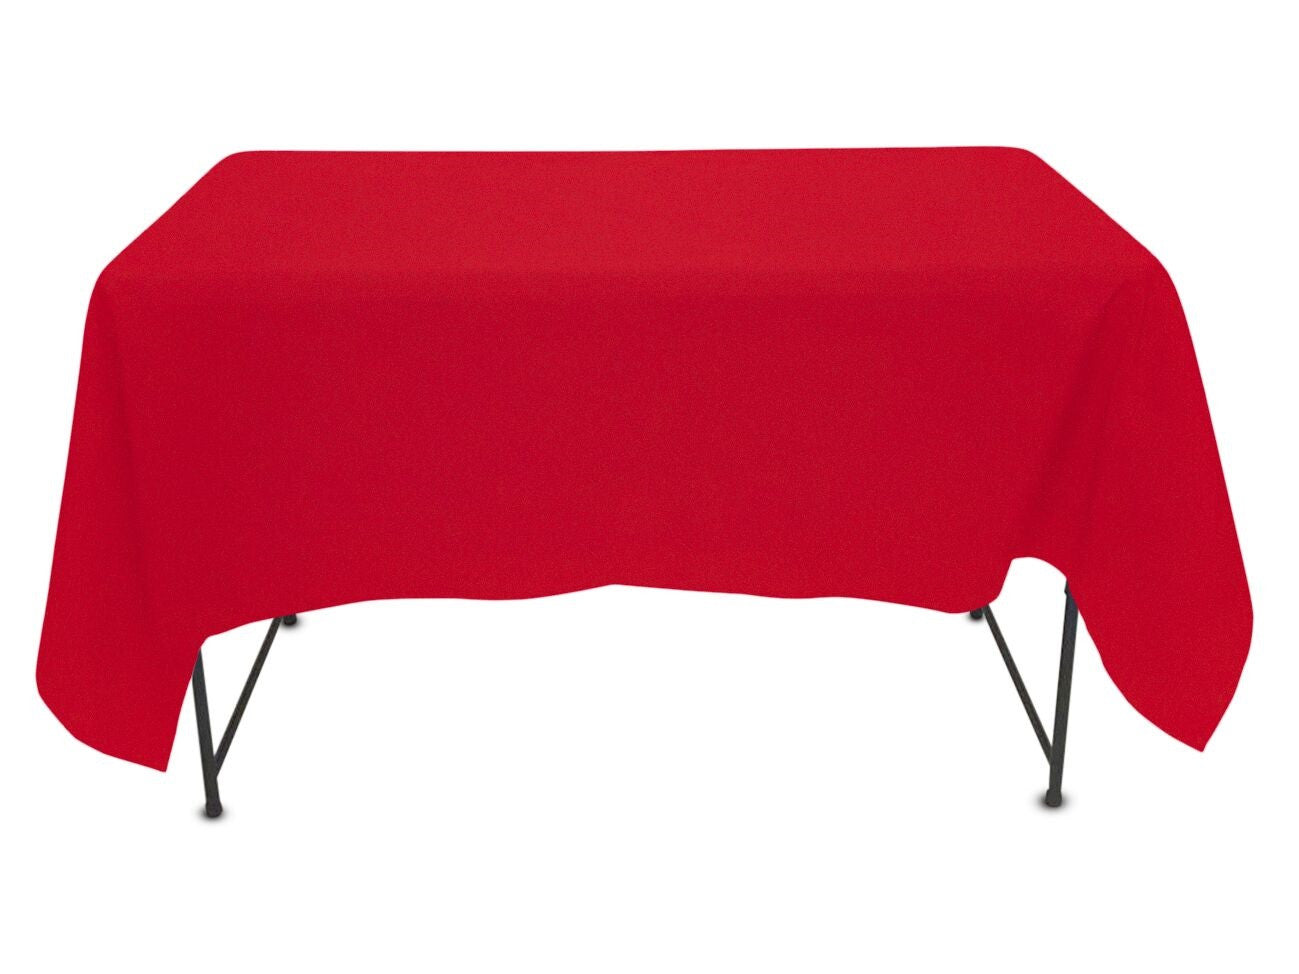 54 X 80 Tablecloth Valley Tablecloths